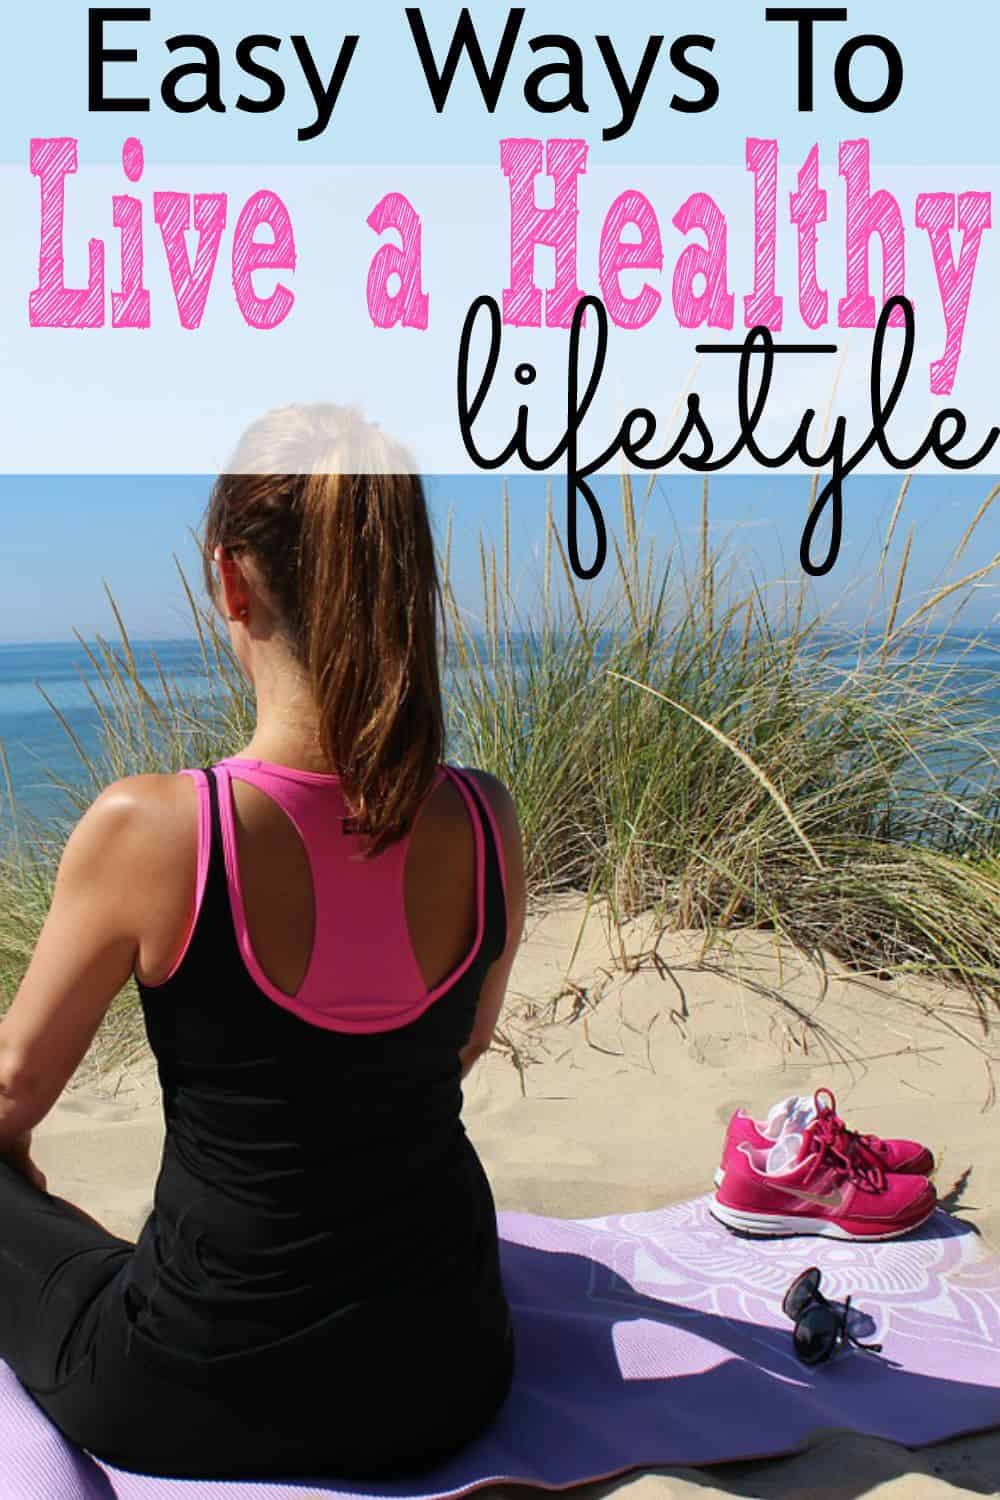 Living a Healthy Lifestyle is Good For Your Wallet